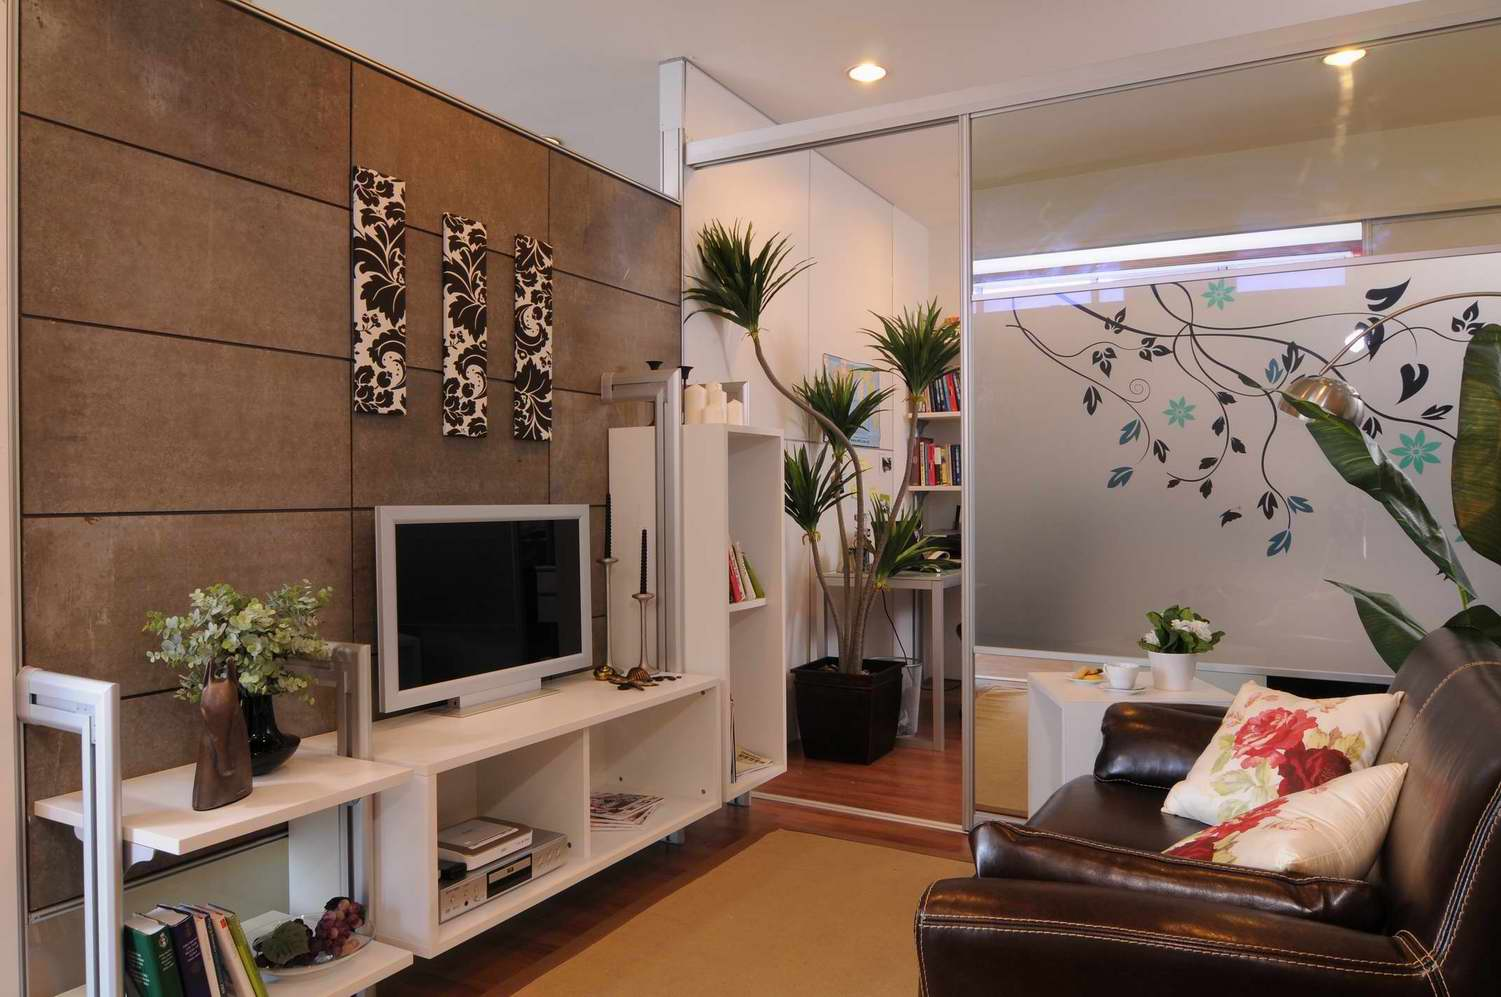 Lcd wall unit design for living room living room designs Wall units for living room design